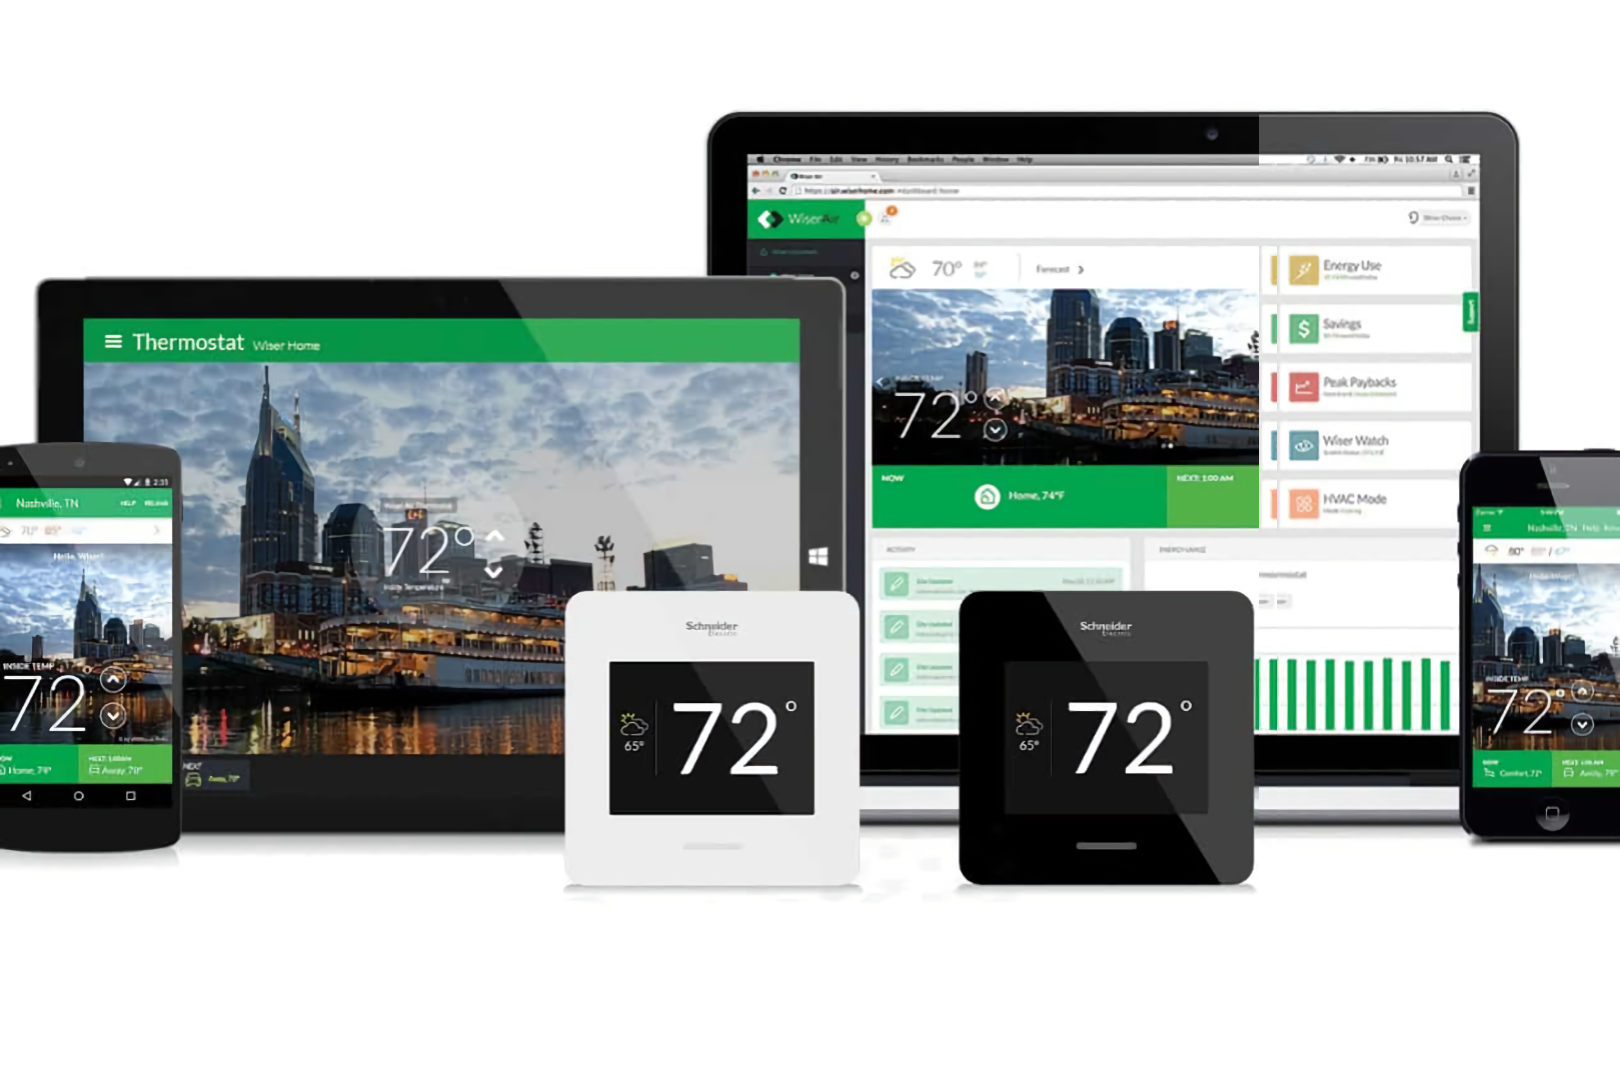 clipsal cbus lighting automation wiser software on PC and tablet